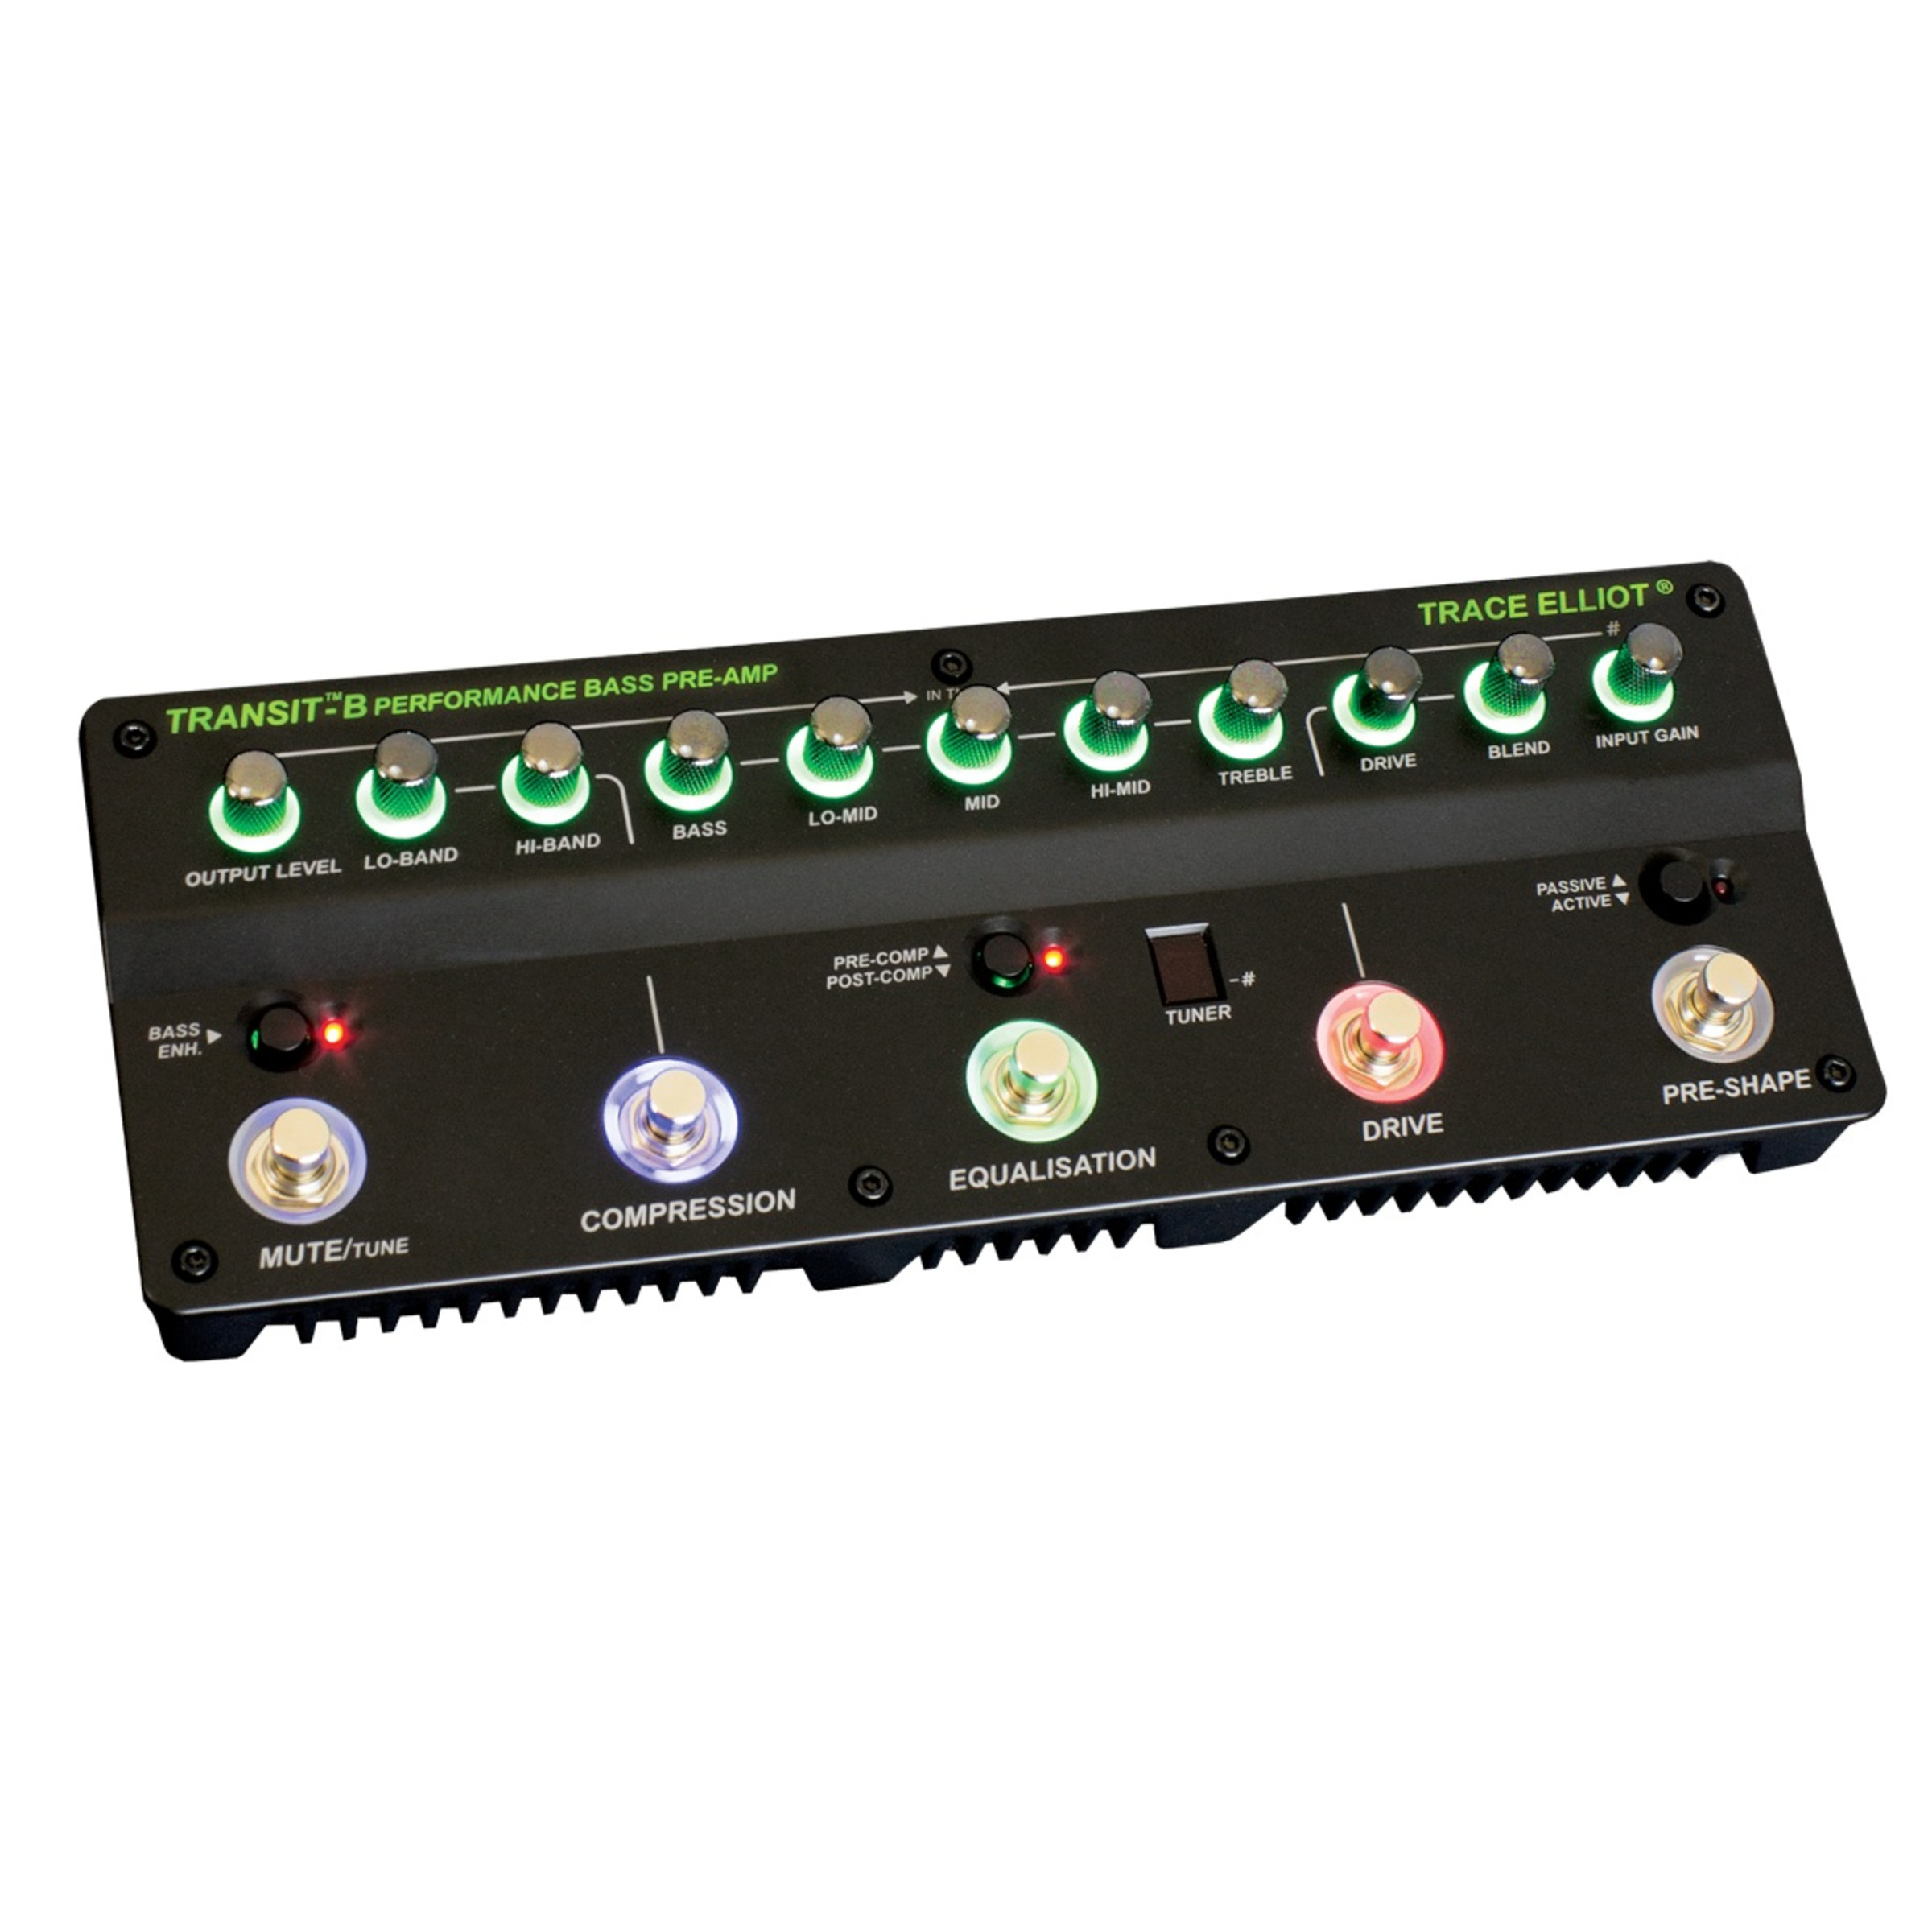 trace elliot transit b bass guitar preamp effects pedal giggear. Black Bedroom Furniture Sets. Home Design Ideas